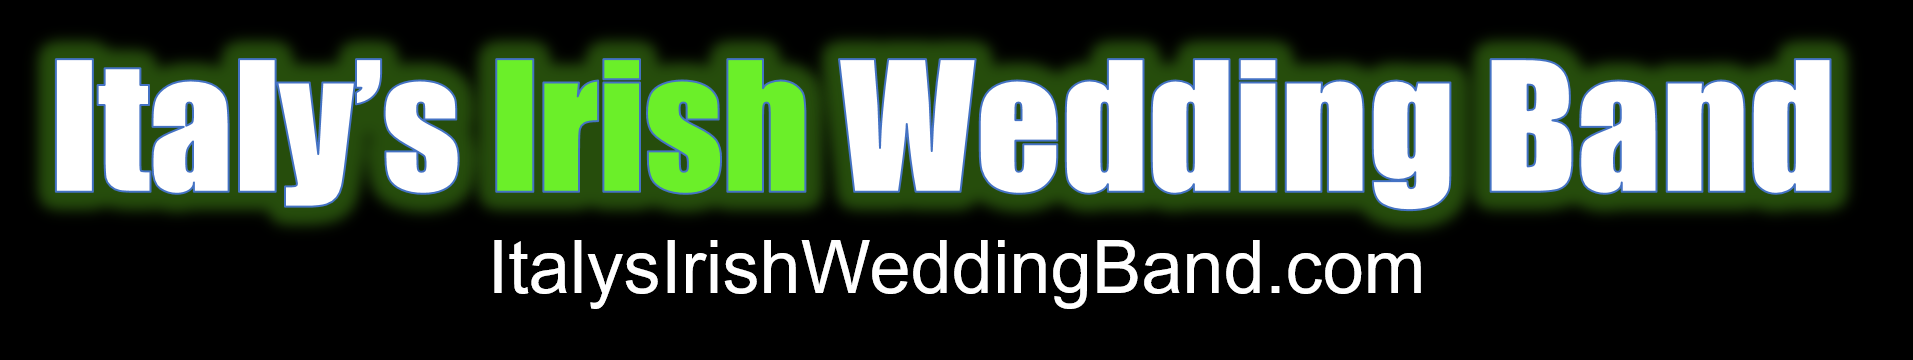 "The Logo of the Italian Wedding Entertainers ""Italy's Irish Wedding Band"""